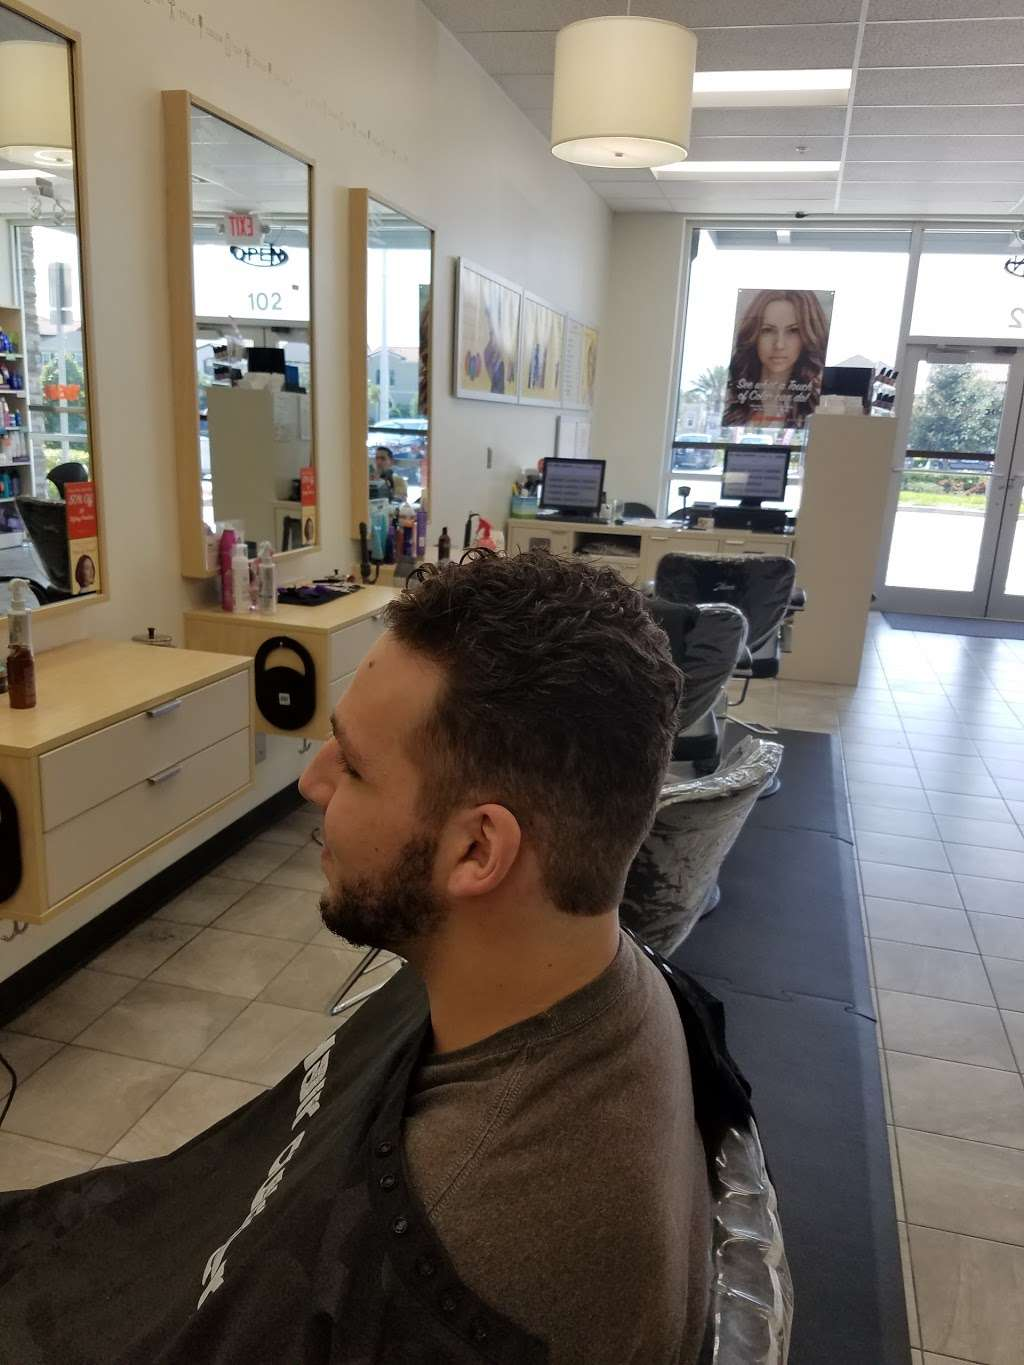 Hair Cuttery - hair care  | Photo 8 of 10 | Address: 2304 N, Remi Dr Suite 102, Melbourne, FL 32940, USA | Phone: (321) 636-0022